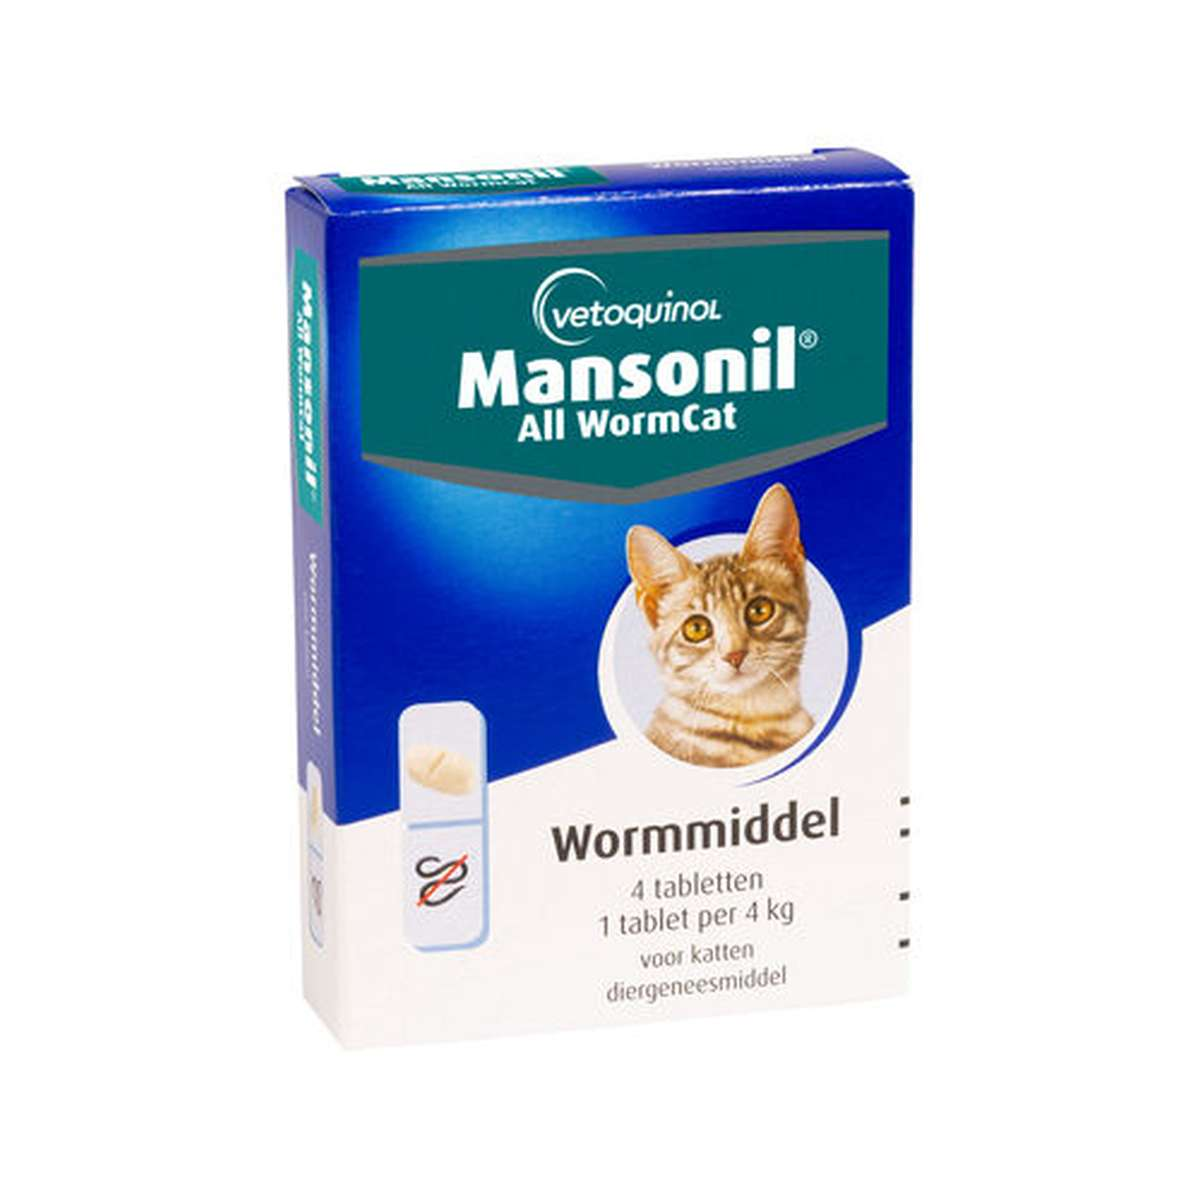 BA MANSONIL ALL WORM CAT 4T 00001